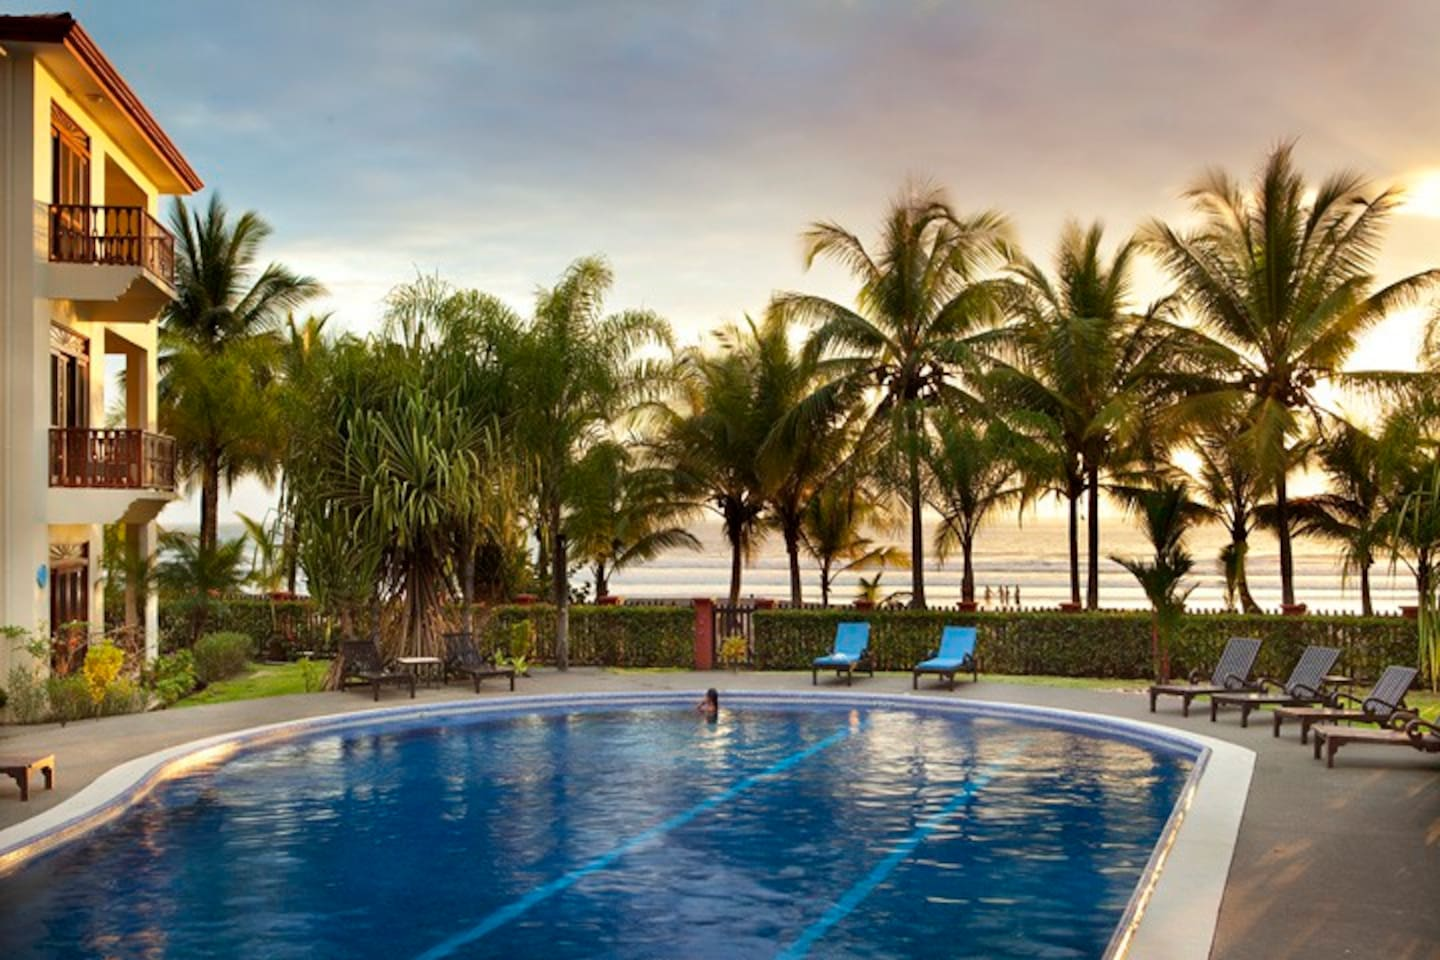 Ocean front pool at sunset in Bahia Azul